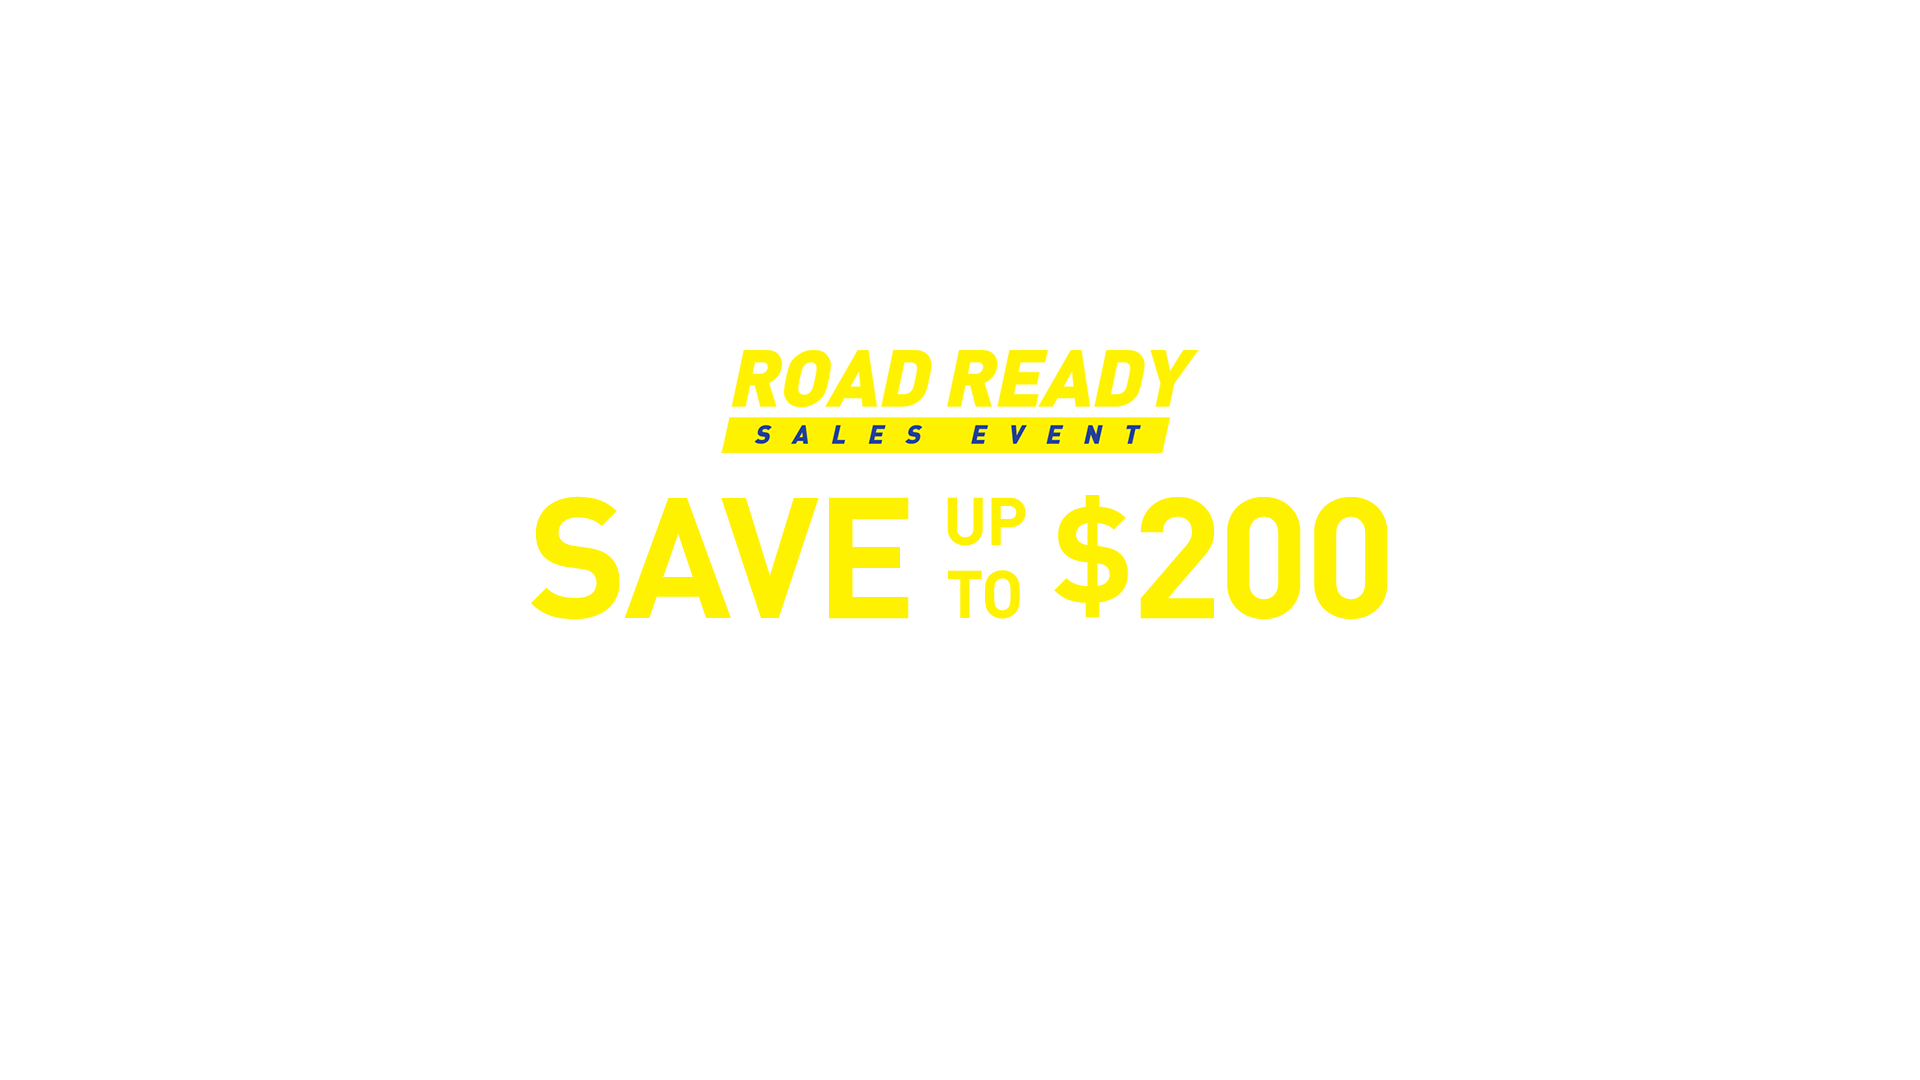 Save up to $200 on 4 select tires.